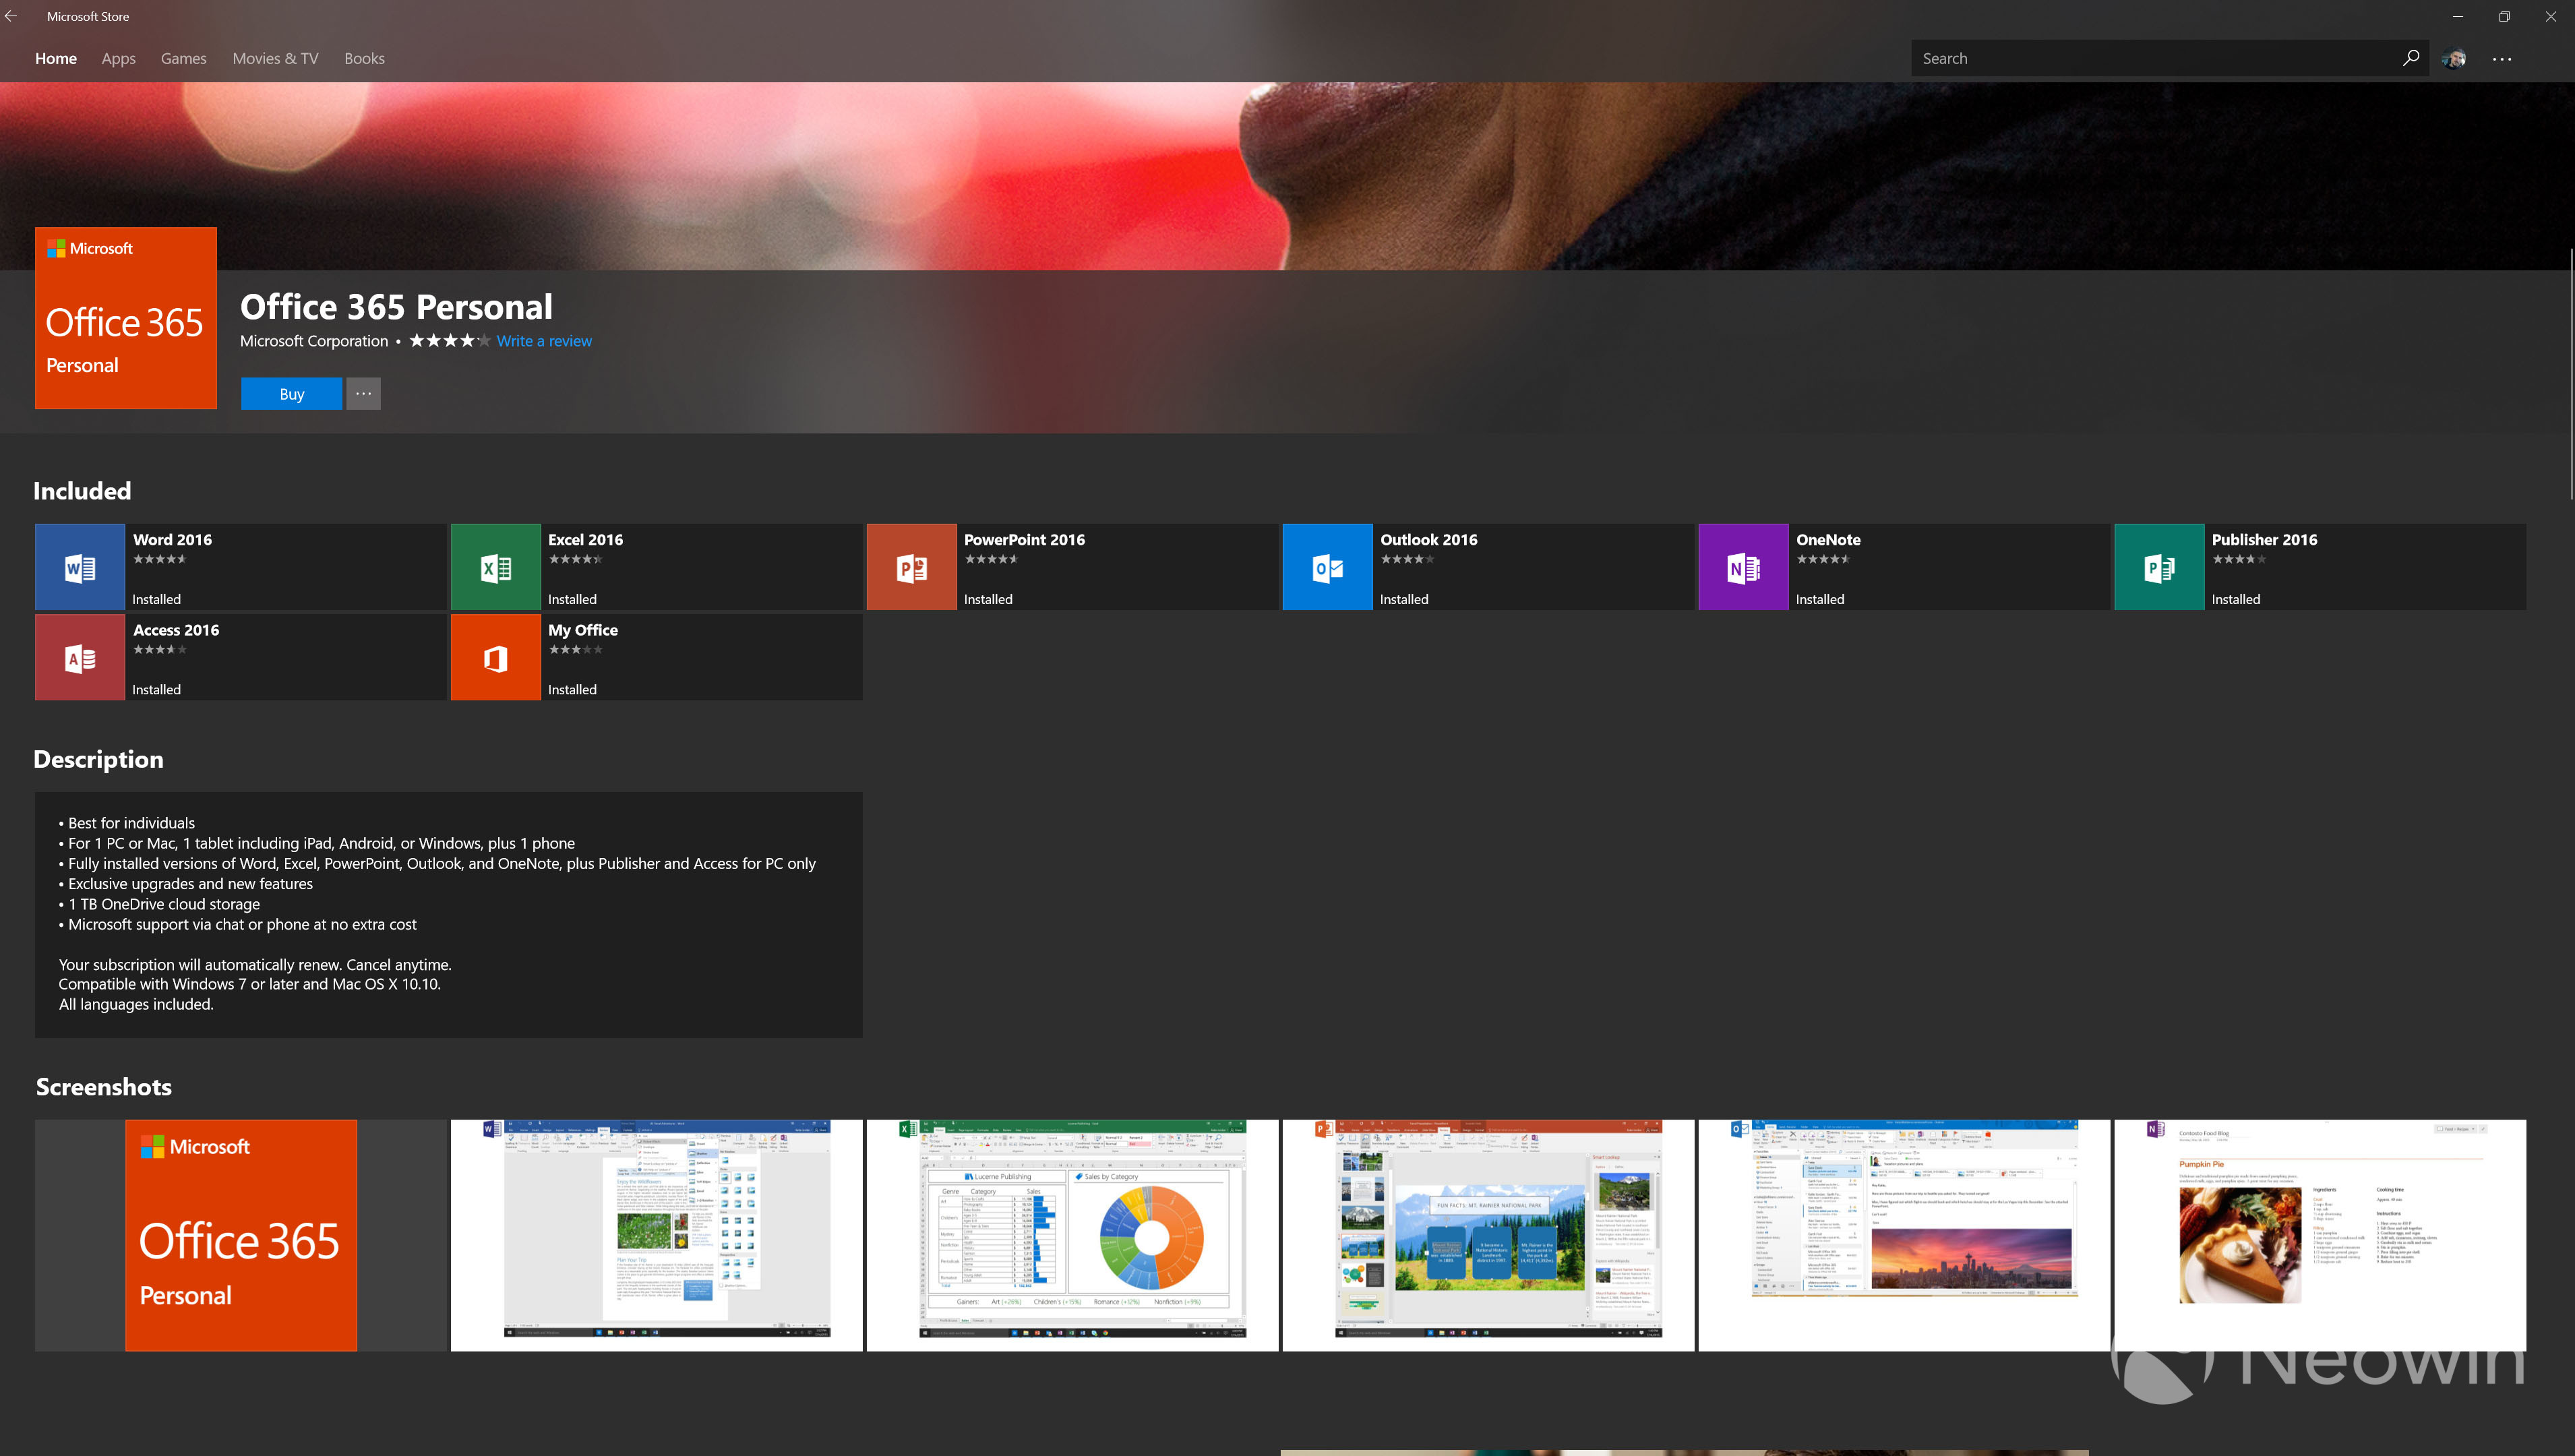 Office 365 Microsoft Access Office 365 Comes Out Of Preview In The Microsoft Store Neowin